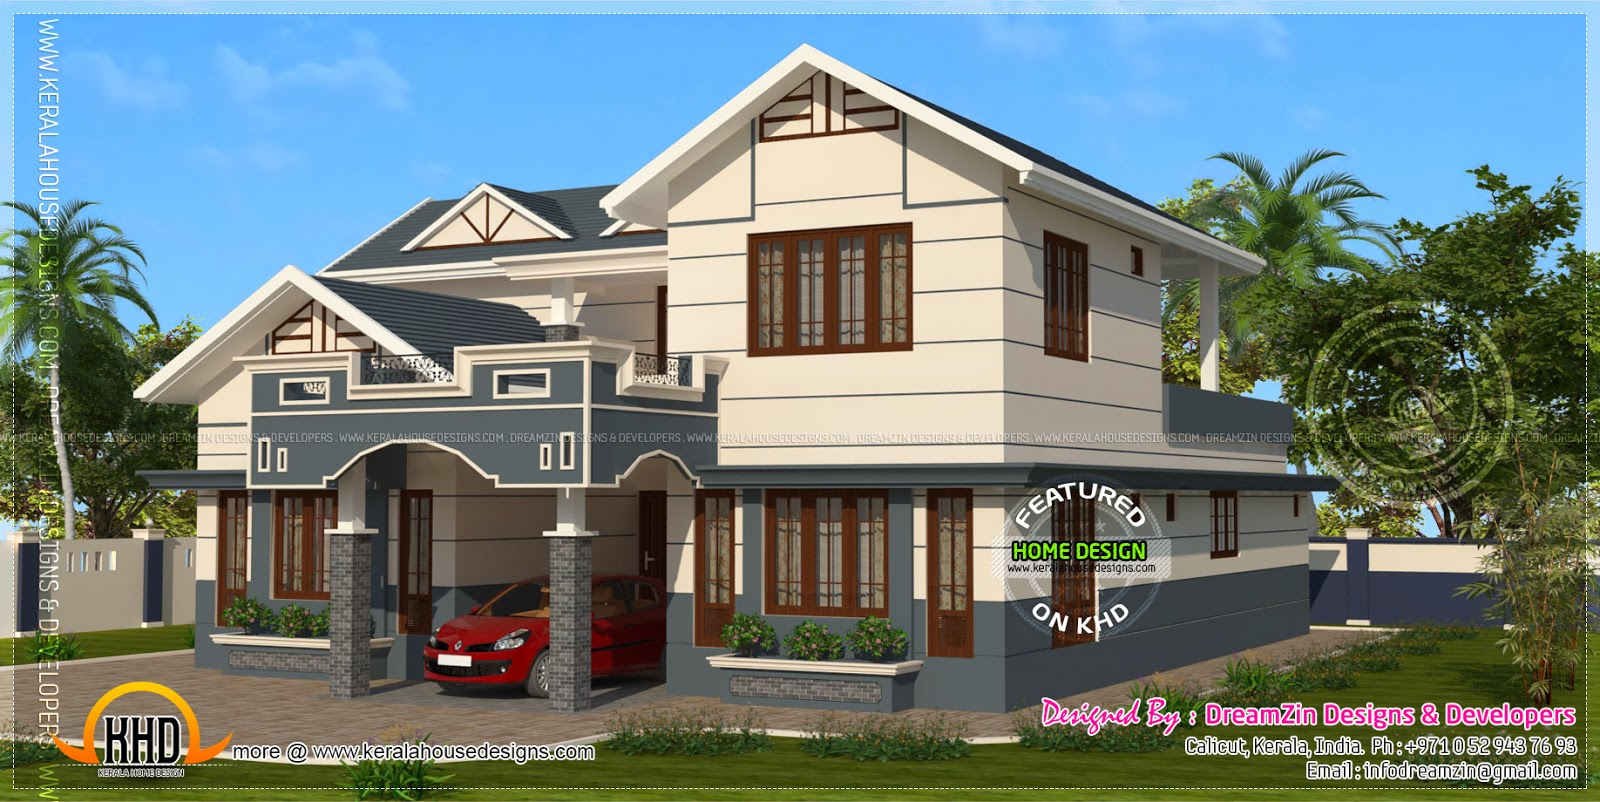 339 square yards house elevation kerala home design and floor plans - Design of home ...